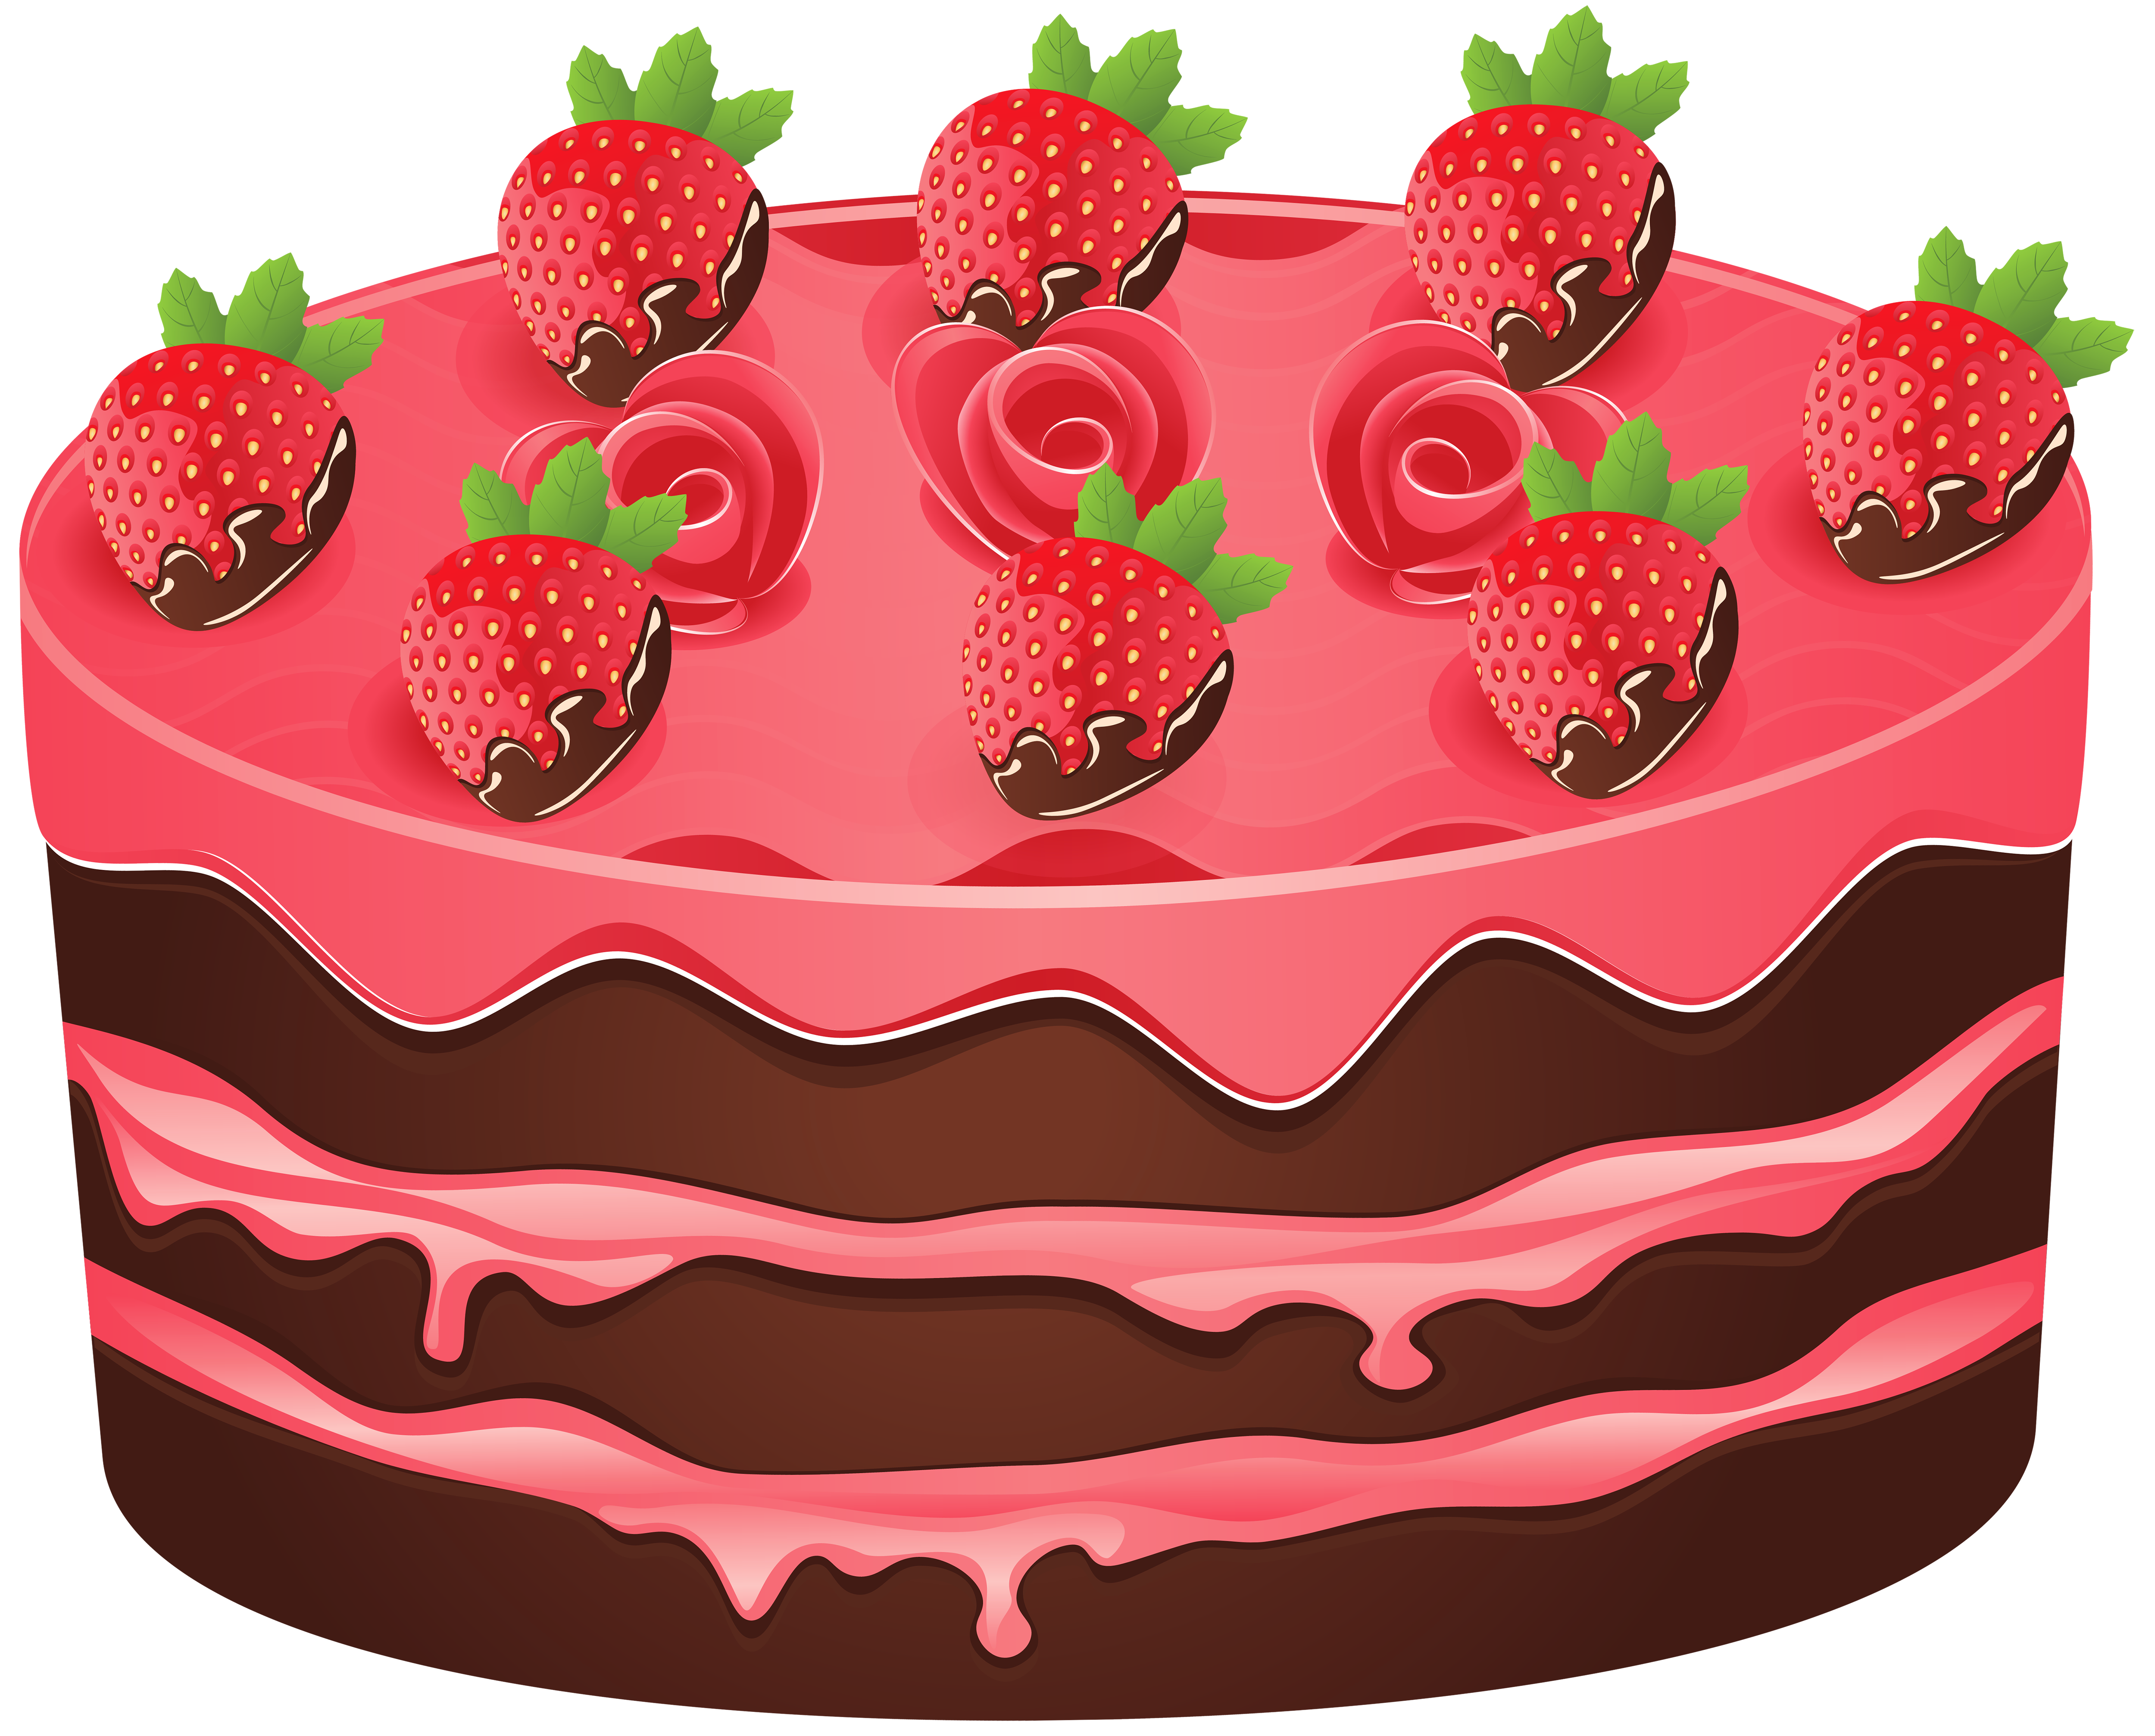 Strawberry Cake PNG Clipart Image.